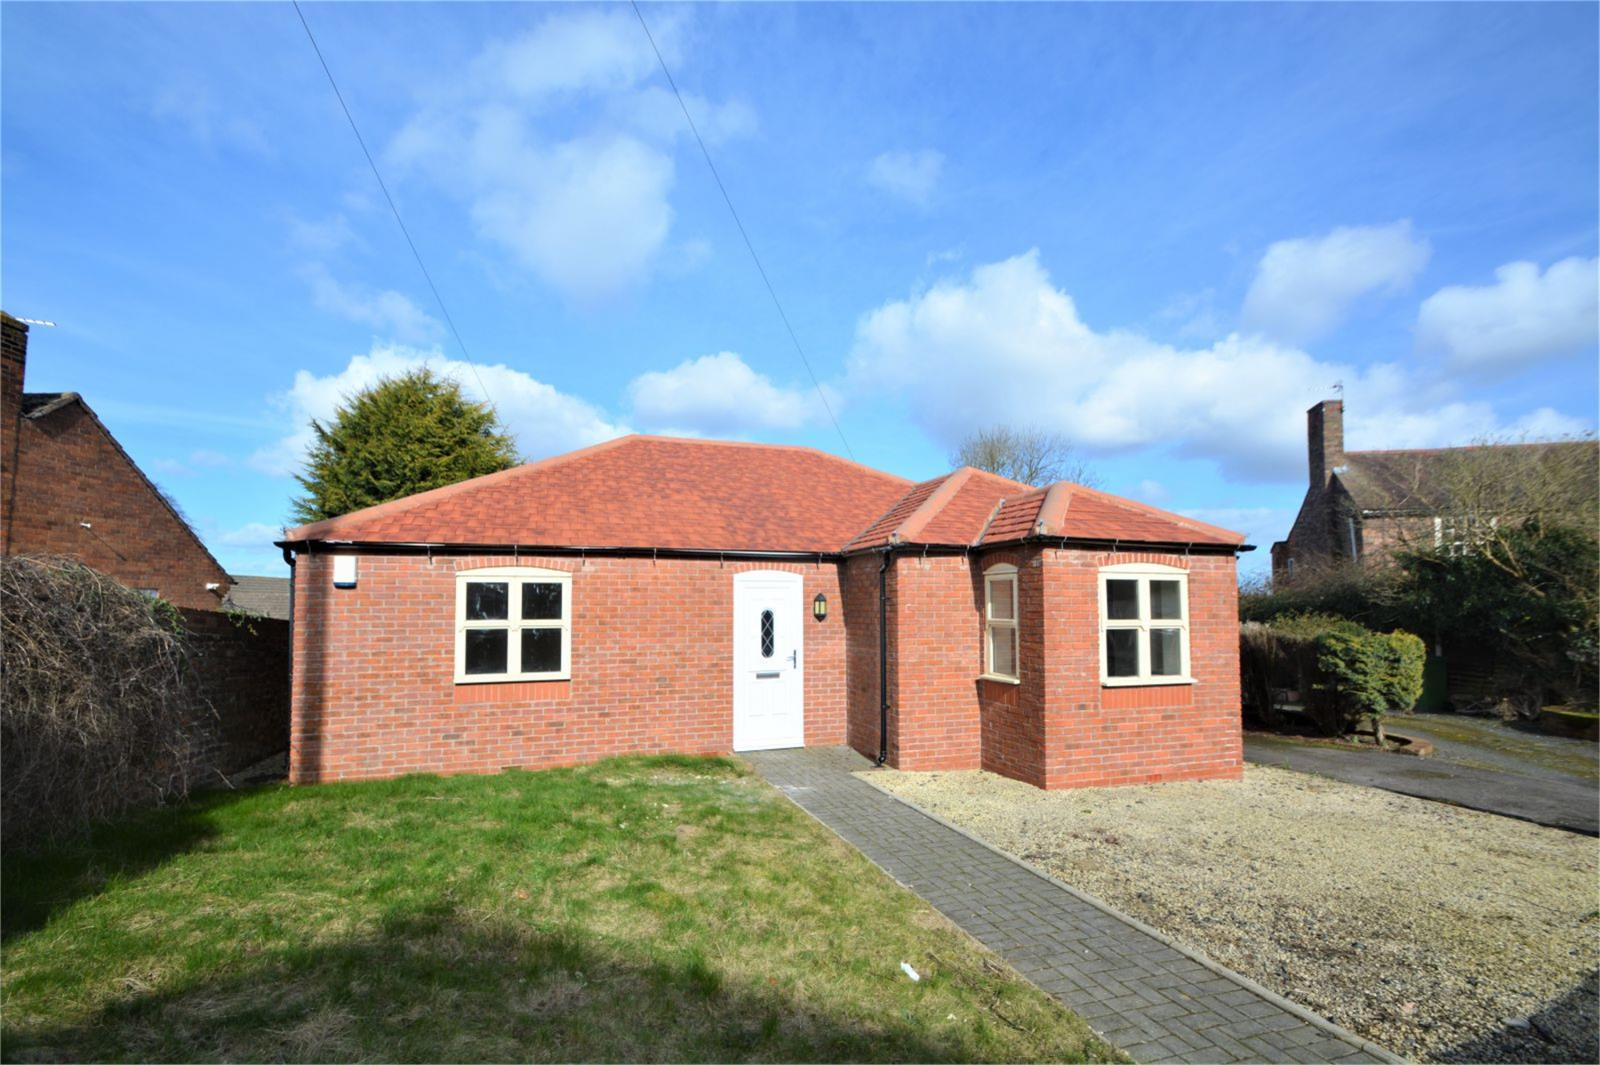 2 Bedrooms Detached Bungalow for sale in Cornerways, High Street, Broseley, Shropshire, TF12